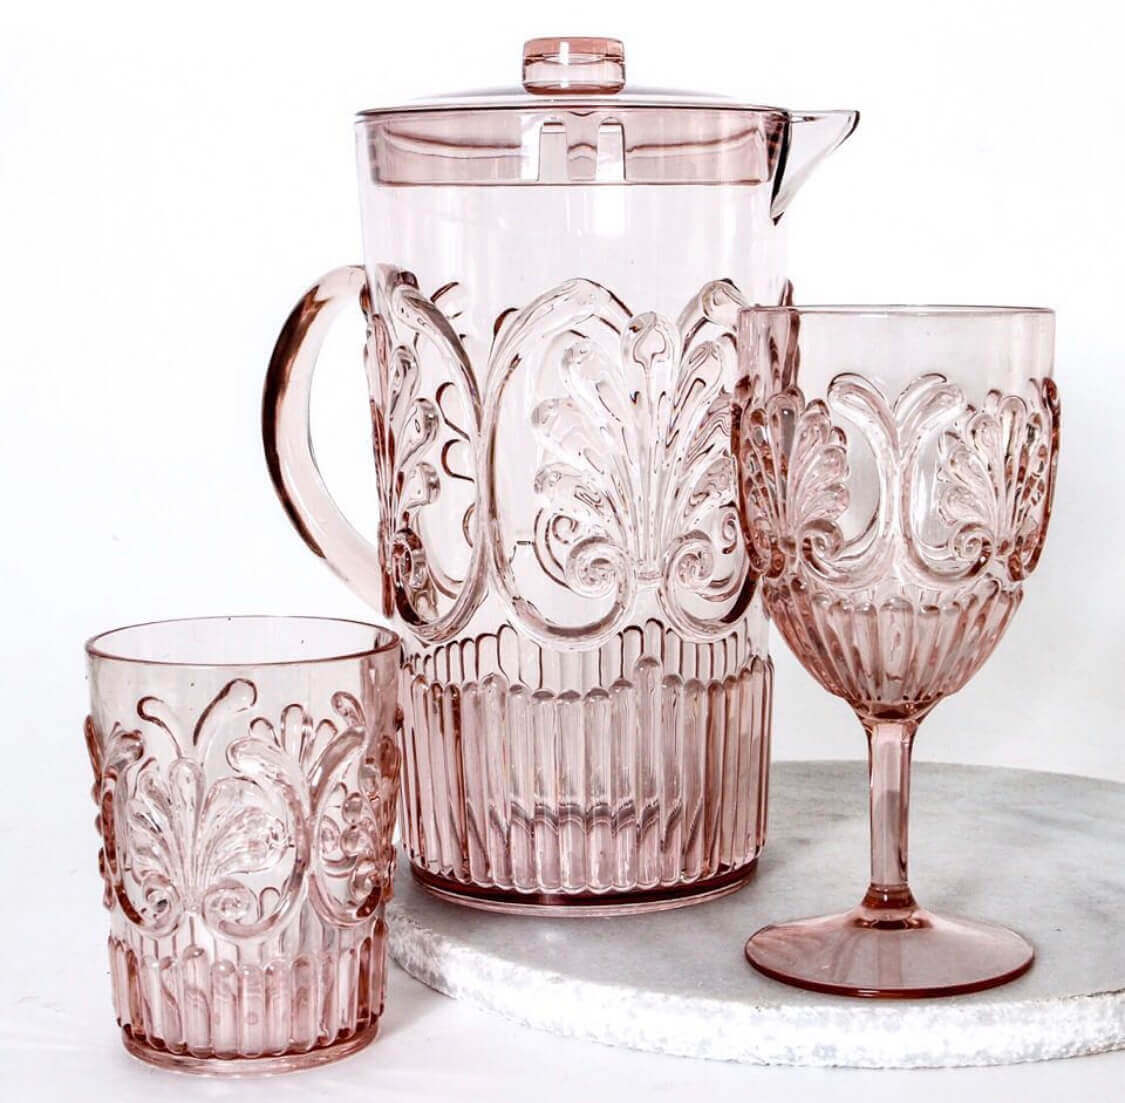 indigo love flemington wine glass jug tumbler acrylic pale pink |The Home Maven